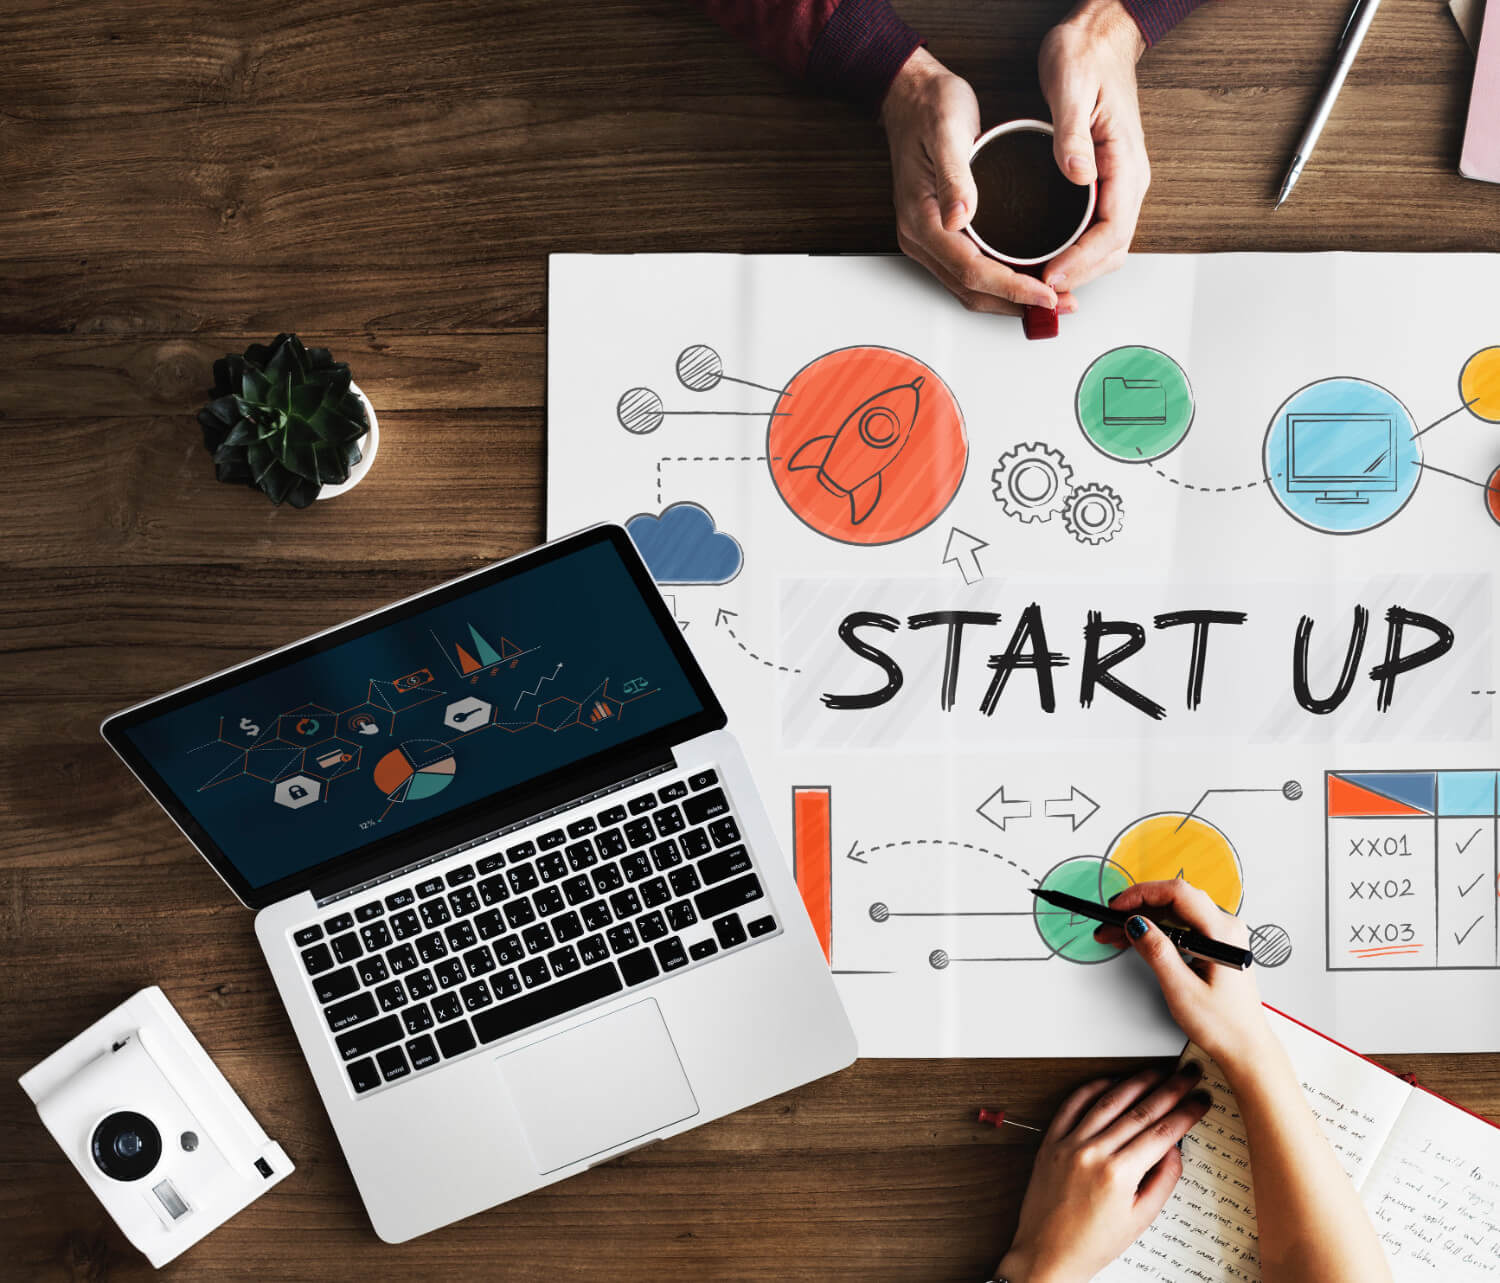 15 ways how to grow your Startup